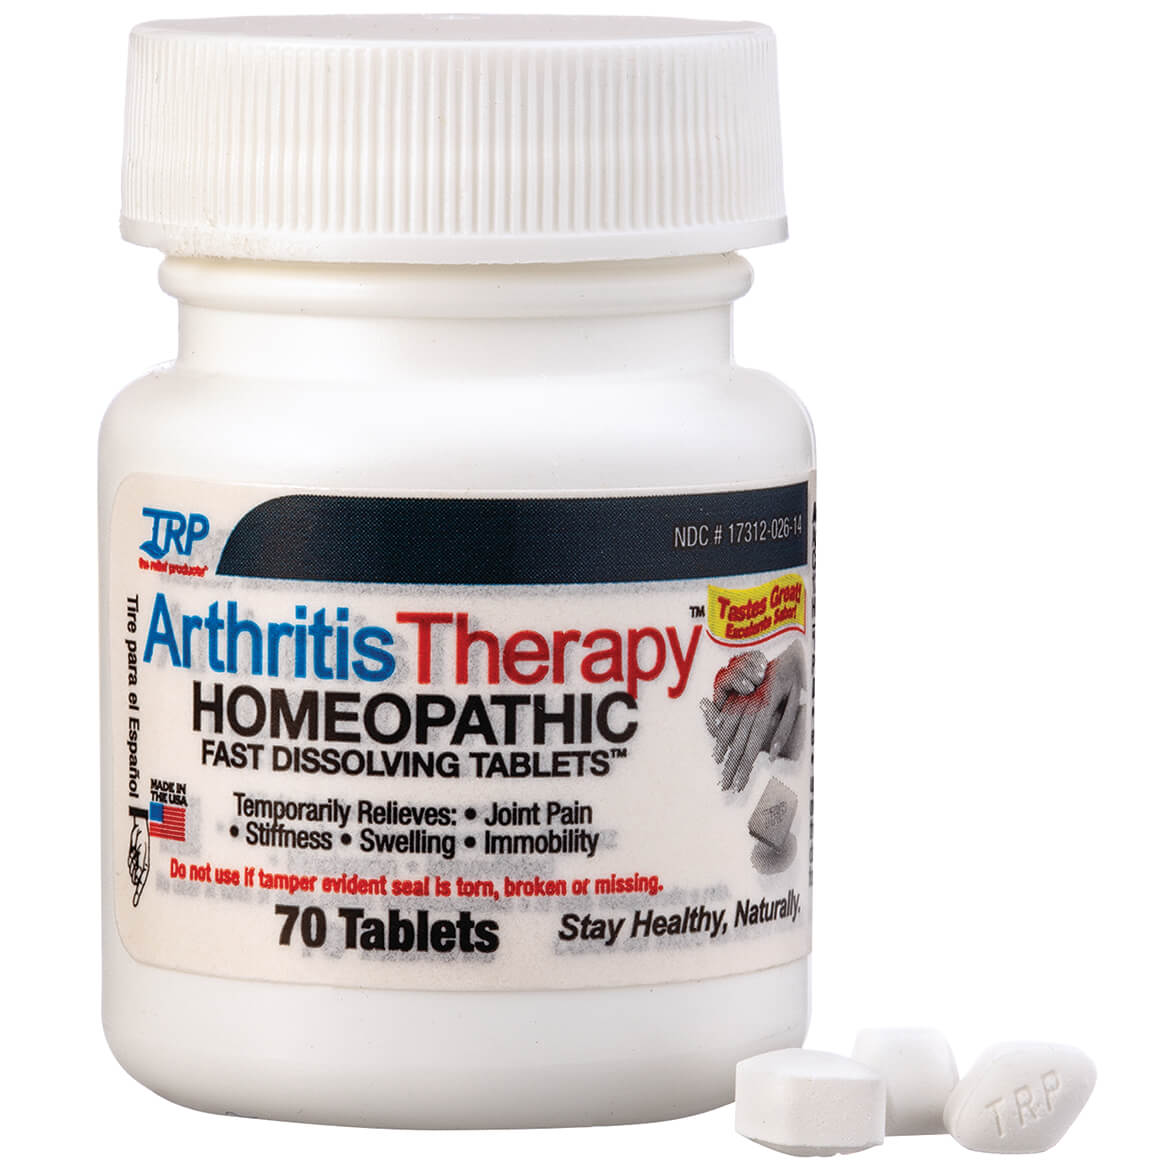 Arthritis Therapy™ Homeopathic Fast Dissolving Tablets™-371262